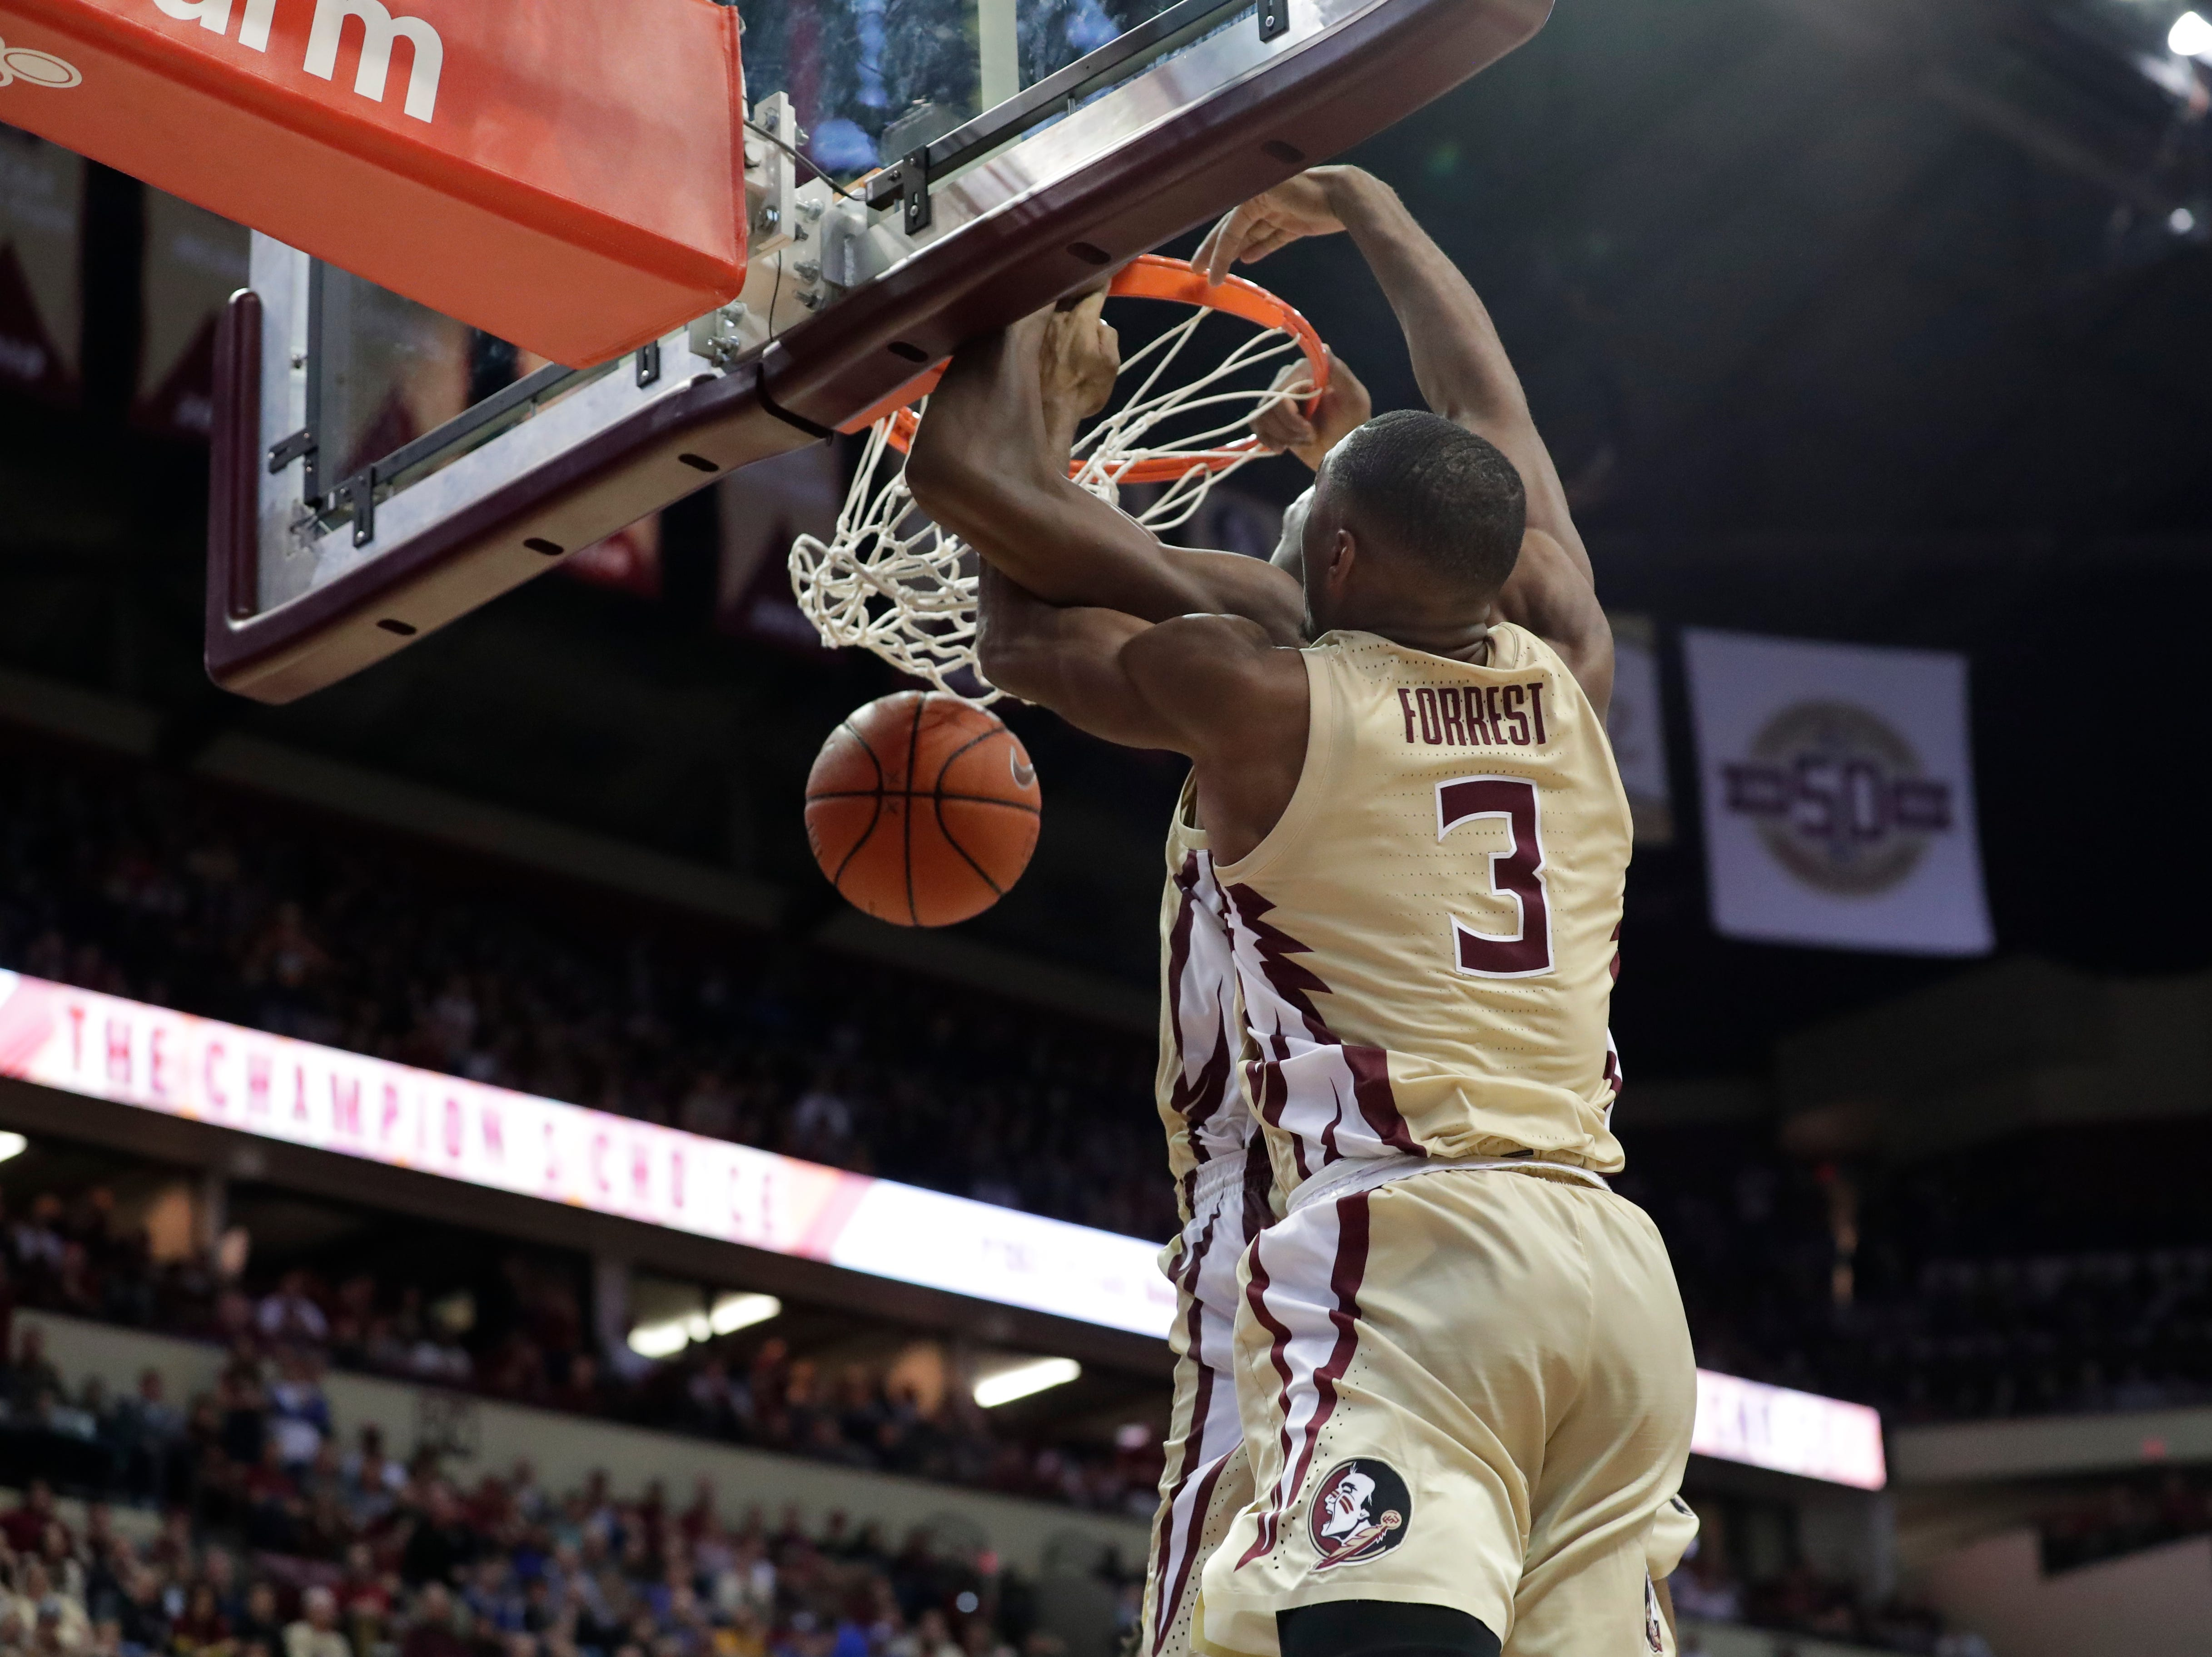 Florida State Seminoles guard Trent Forrest (3) and Florida State Seminoles forward Mfiondu Kabengele (25) go up to dunk the ball together. Ranked 13 in the ACC, the Florida State Seminoles host the number 1 team, the Duke Blue Devils, at the Tucker Civic Center, Saturday, Jan. 12, 2019.